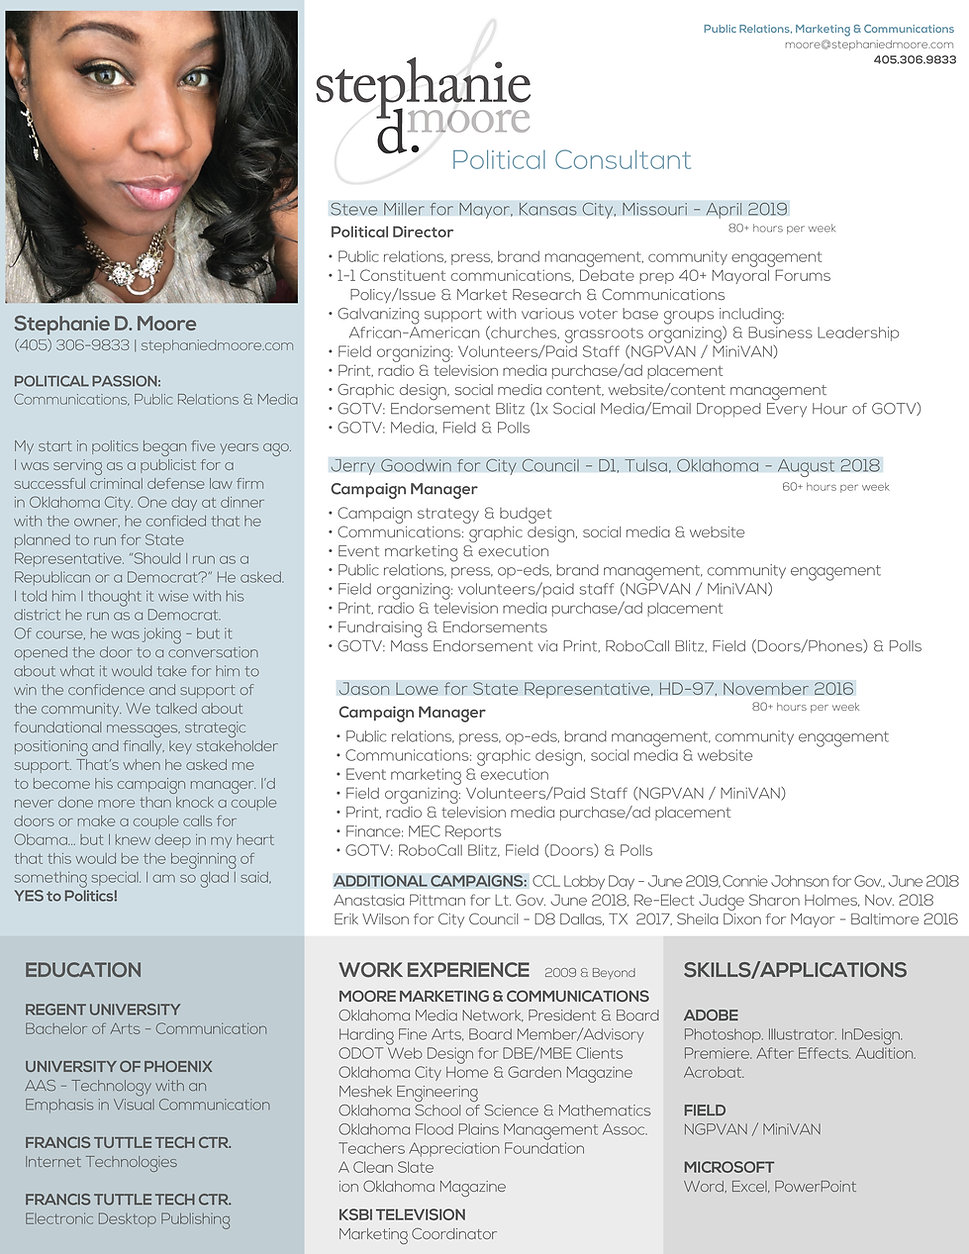 Stephanie-D-Moore_Political-Consultant-2